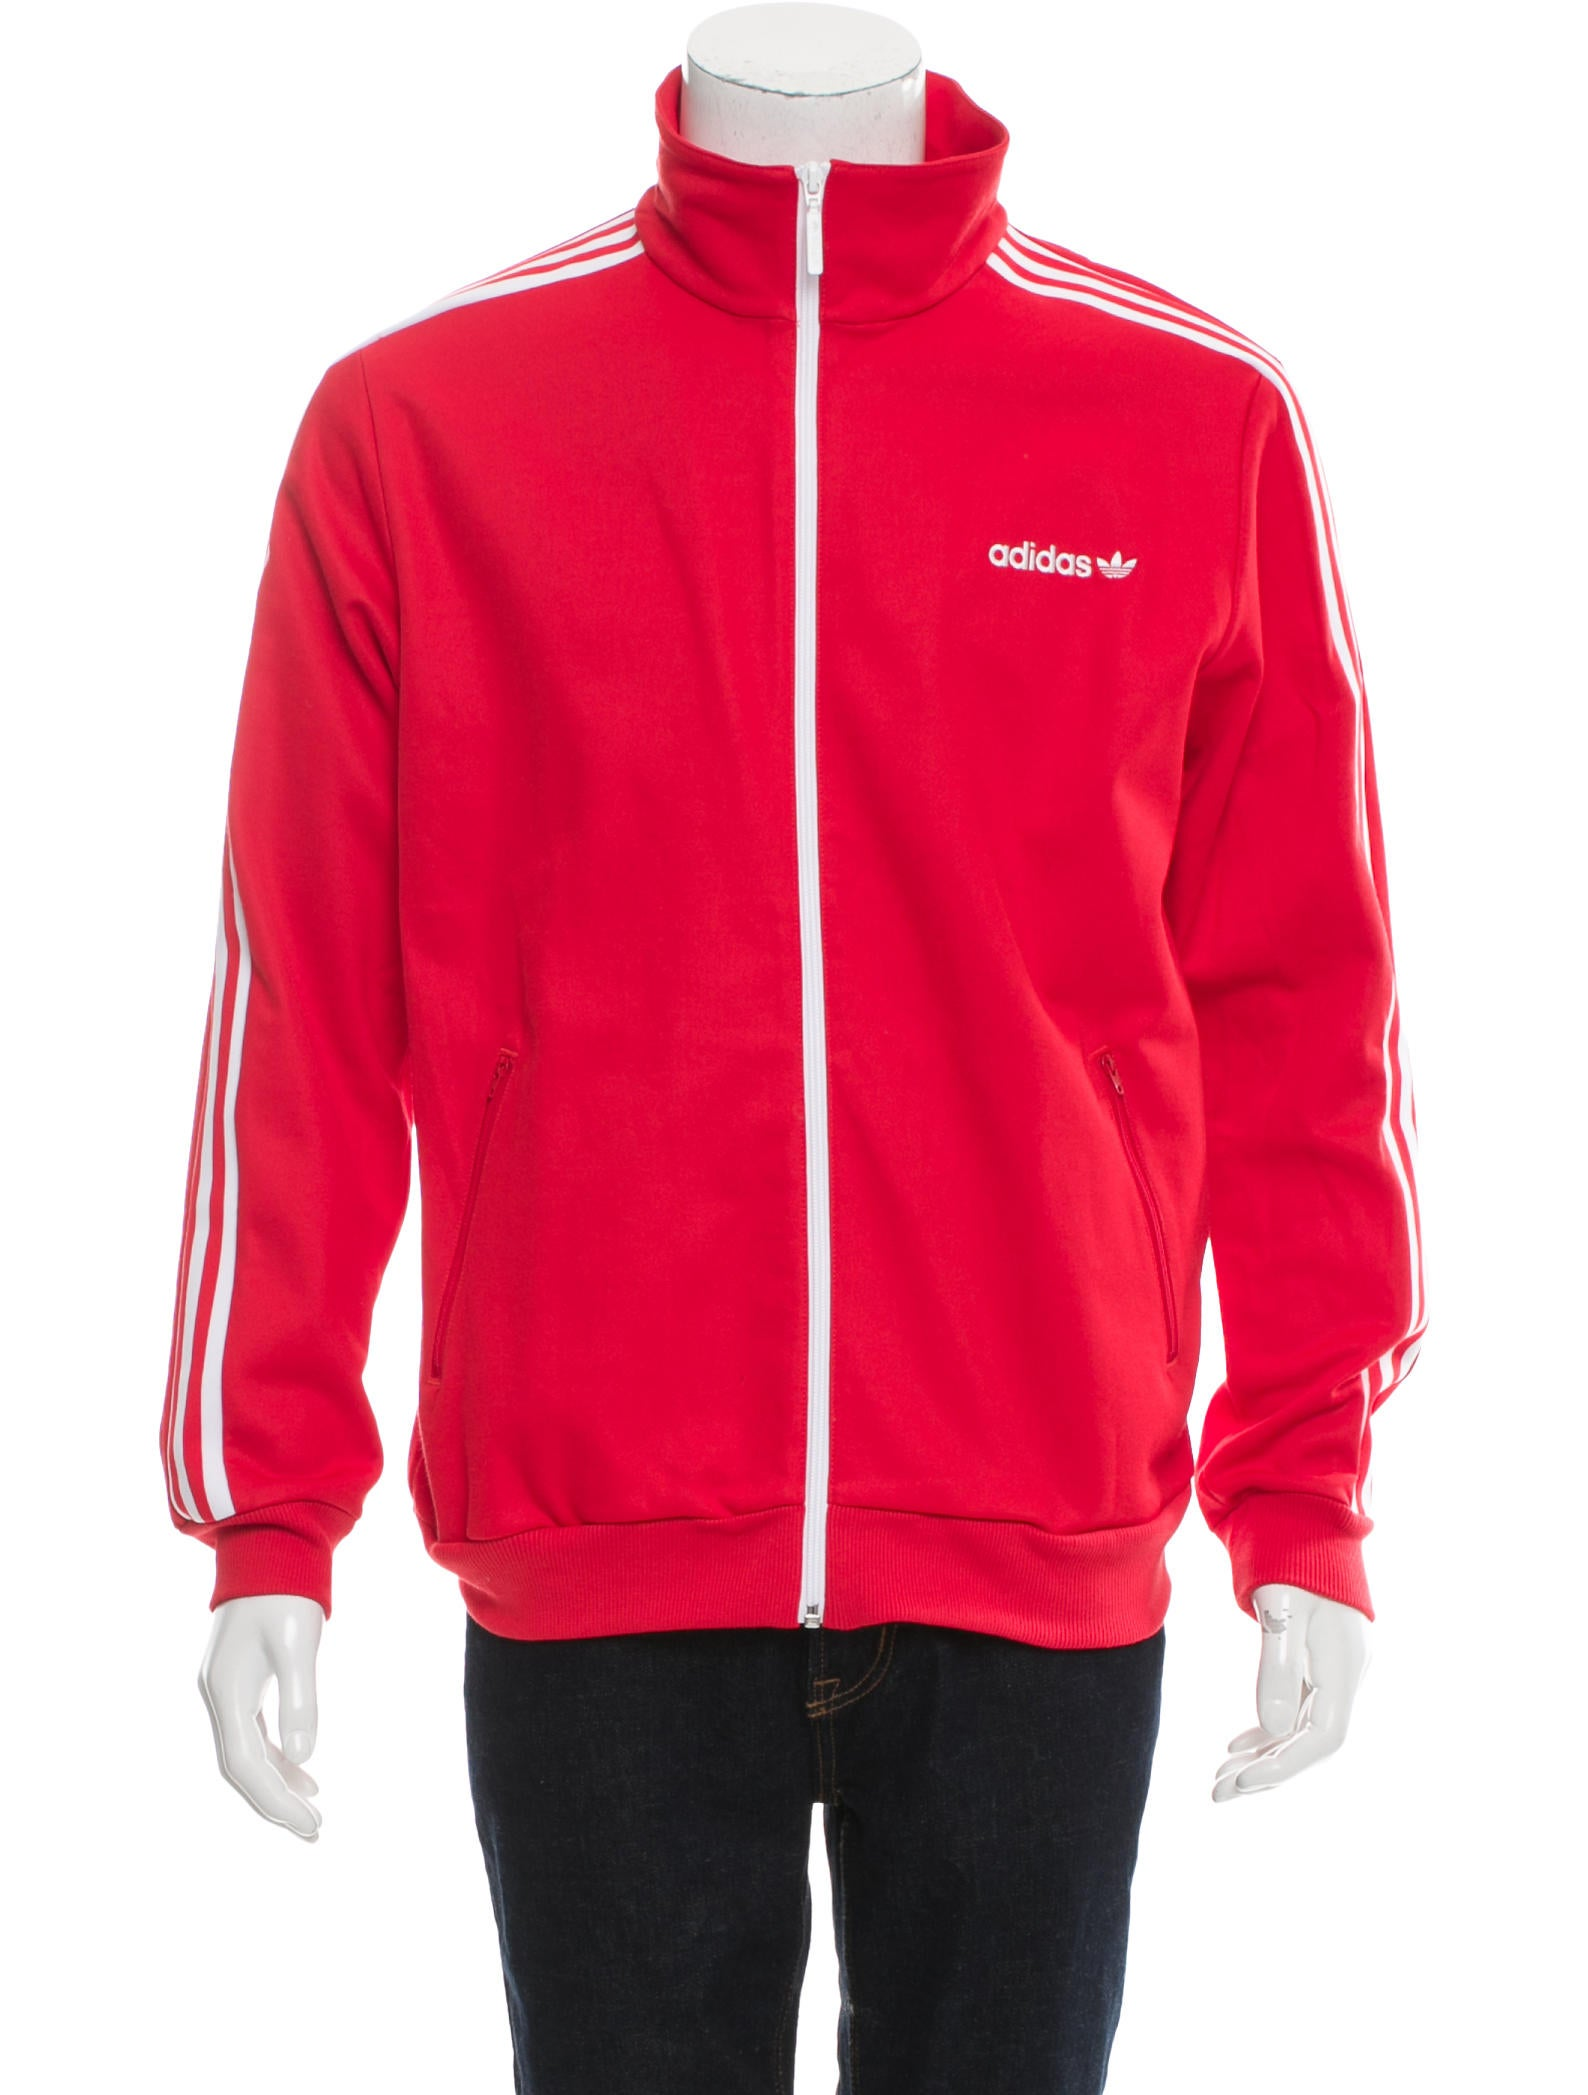 adidas beckenbauer track jacket w tags clothing. Black Bedroom Furniture Sets. Home Design Ideas